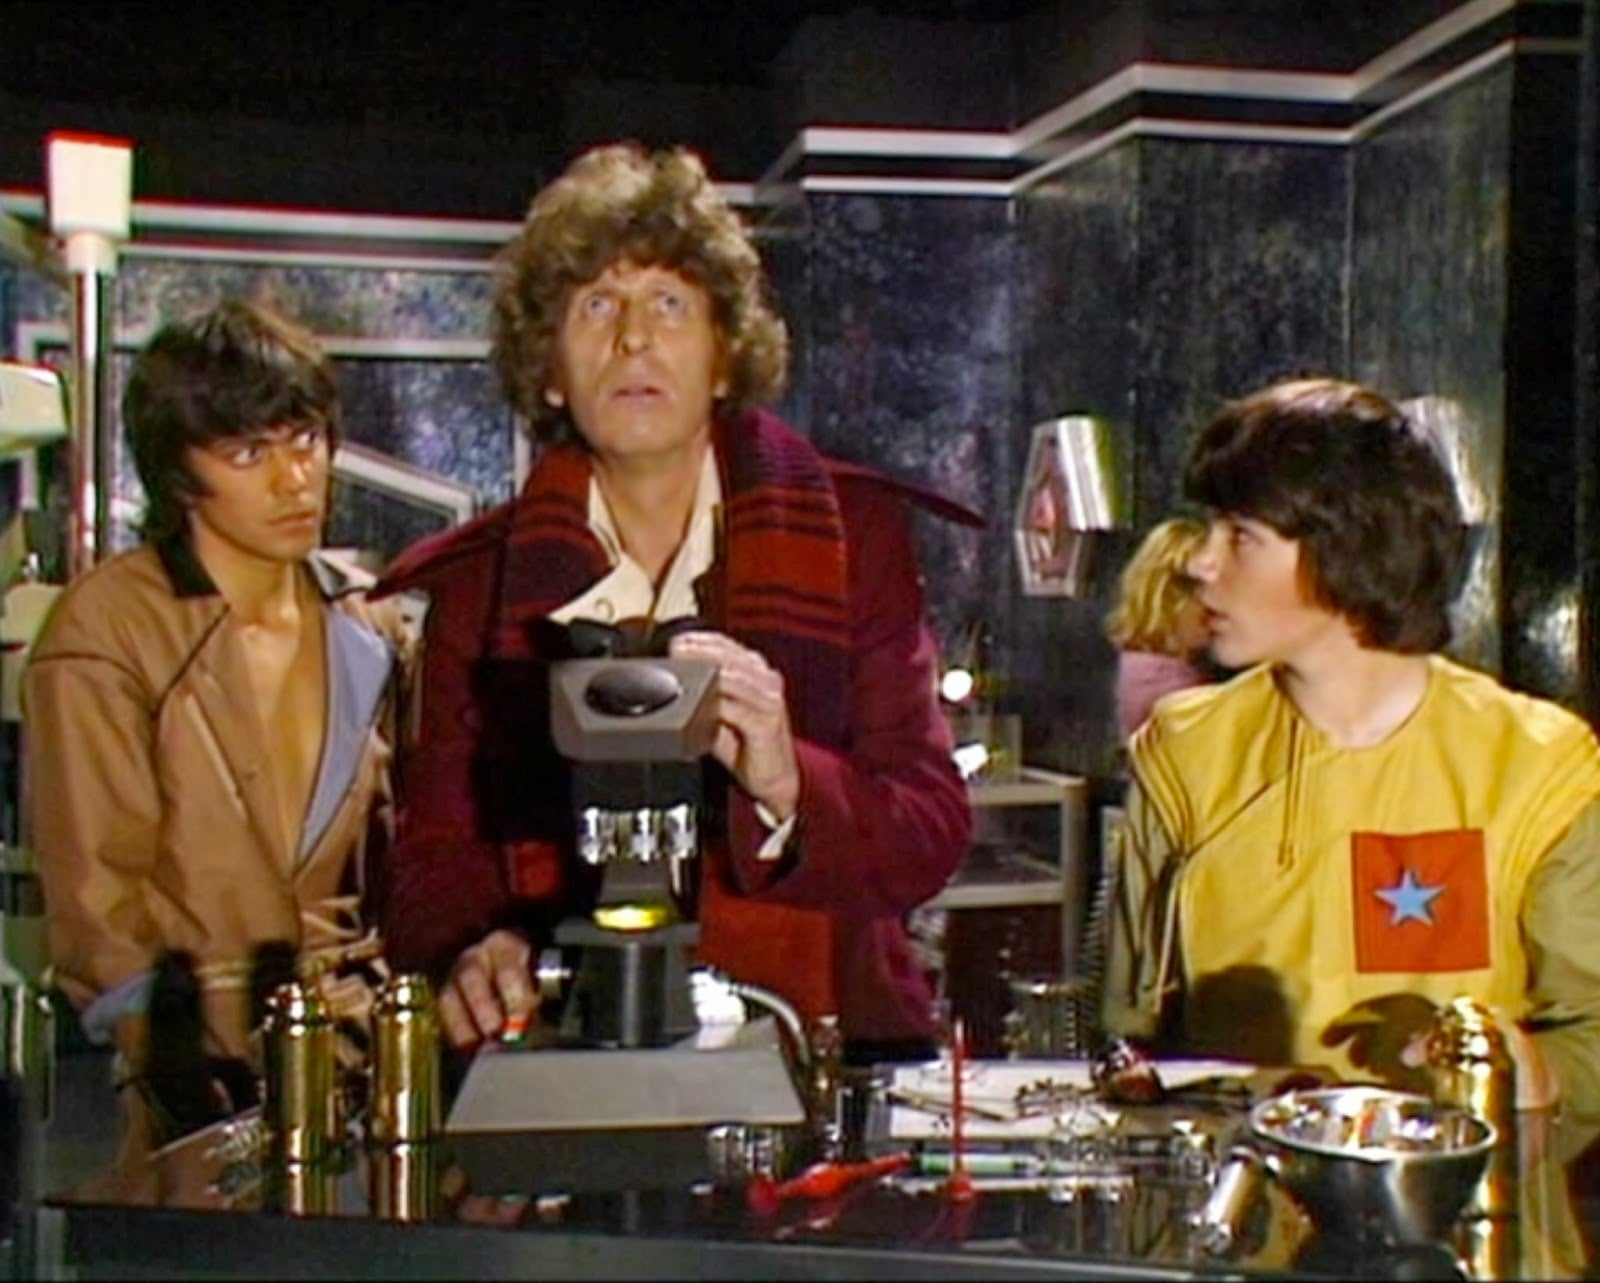 20 Doctor Who Stories That Are Based On Real Science